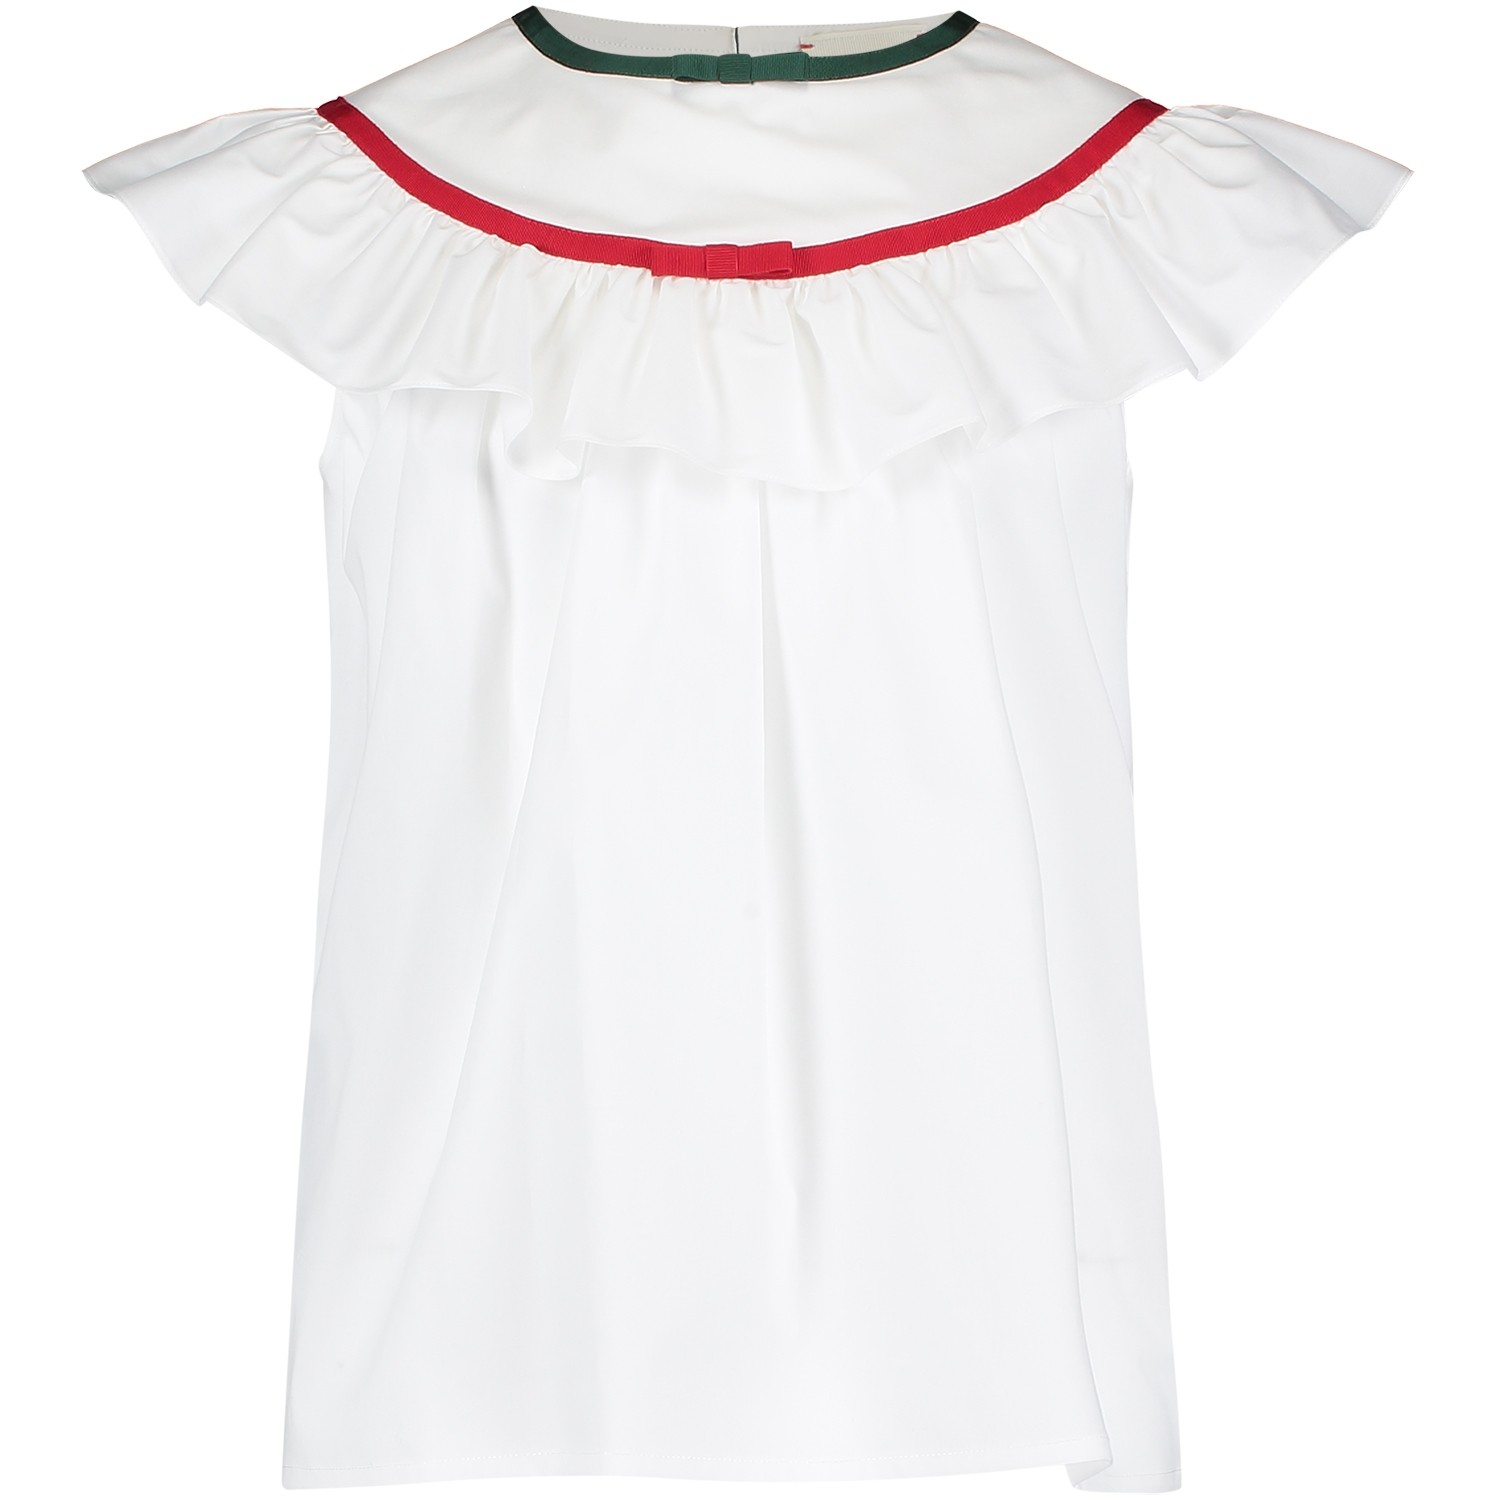 Picture of Gucci 492017 kids shirt white